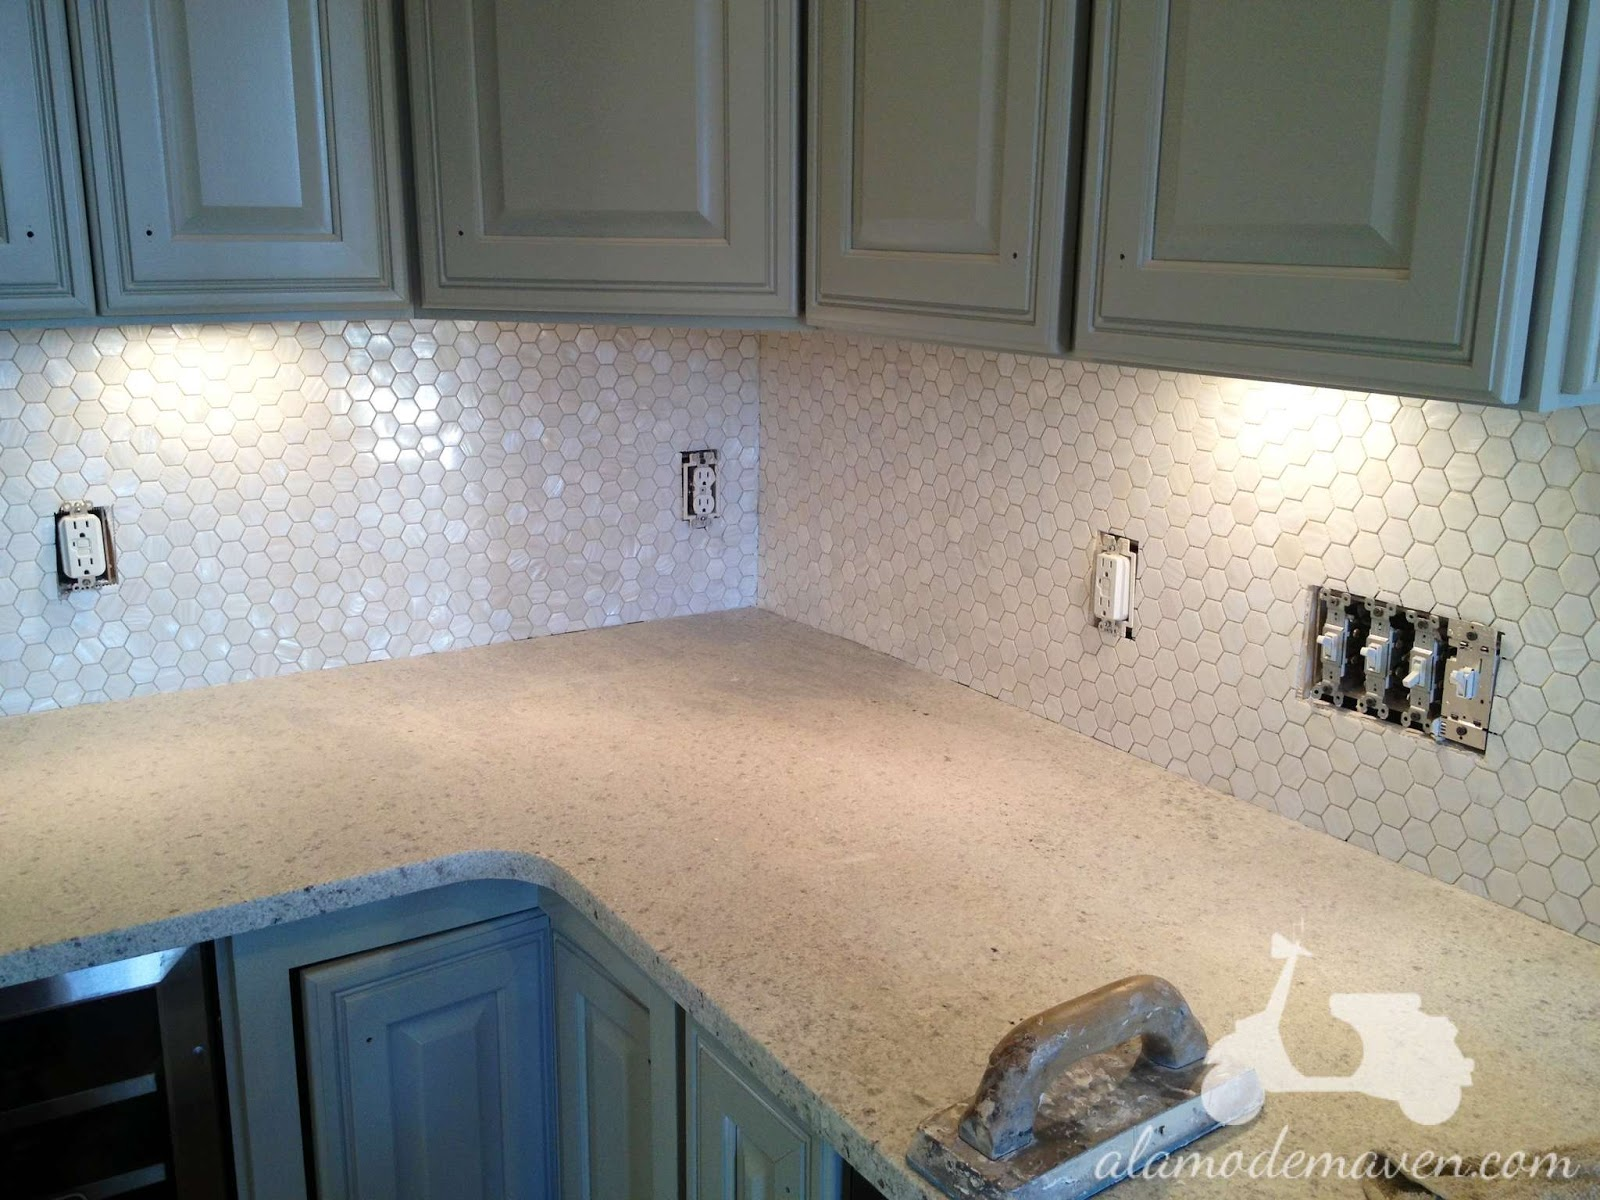 Alamode the new kitchen tile backsplash my tile designer seth from indigo granite and tile designs and i chose a mother of pearl hexagonal tile and i love it dailygadgetfo Image collections